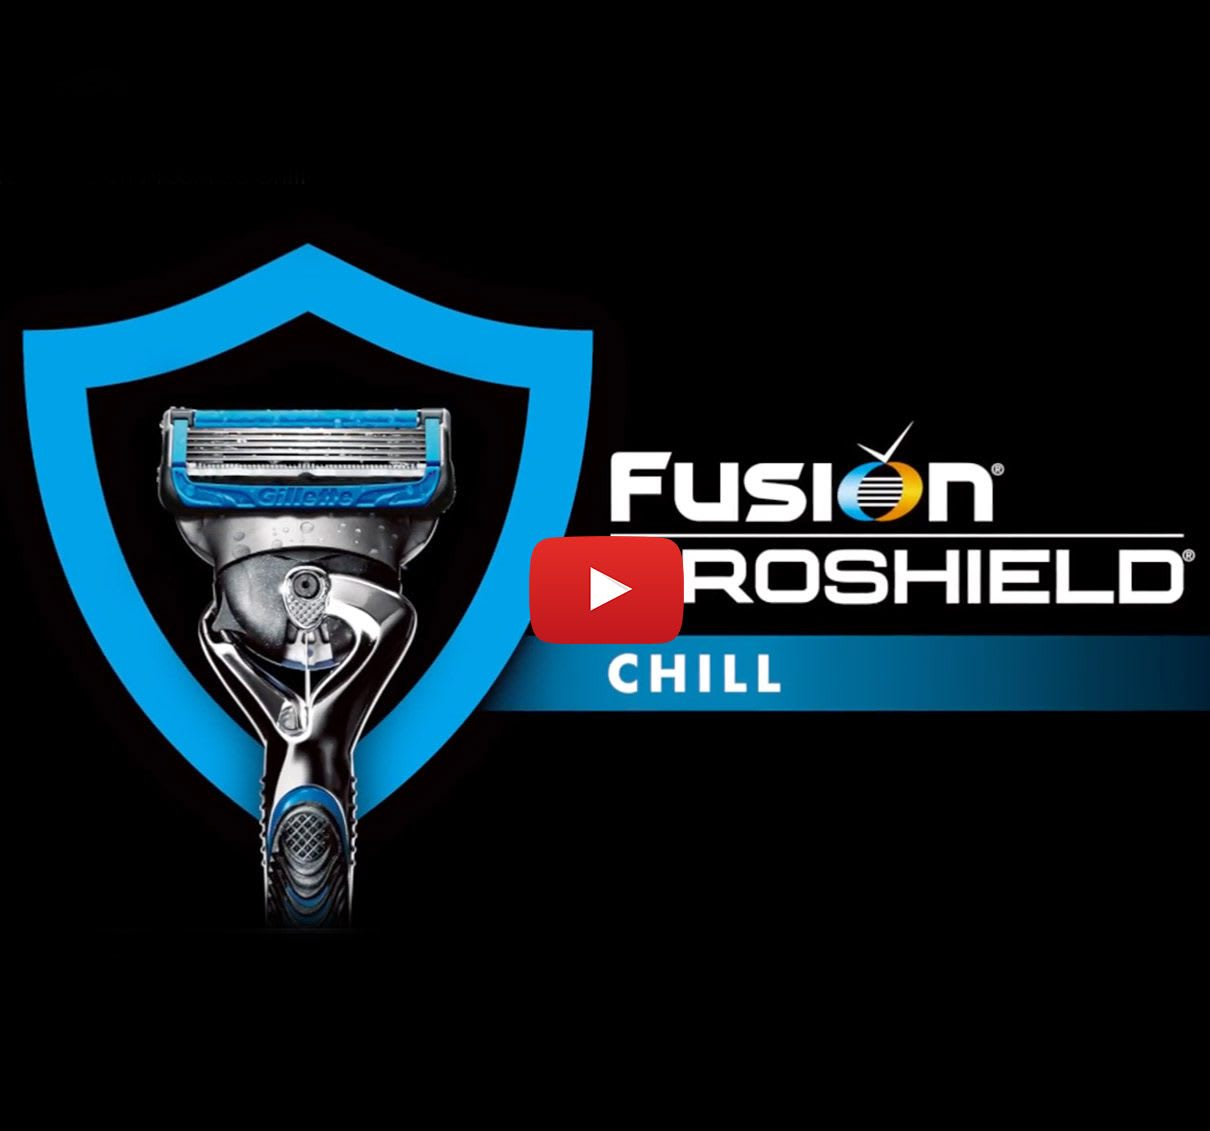 Fusion Proshieled Chill Video